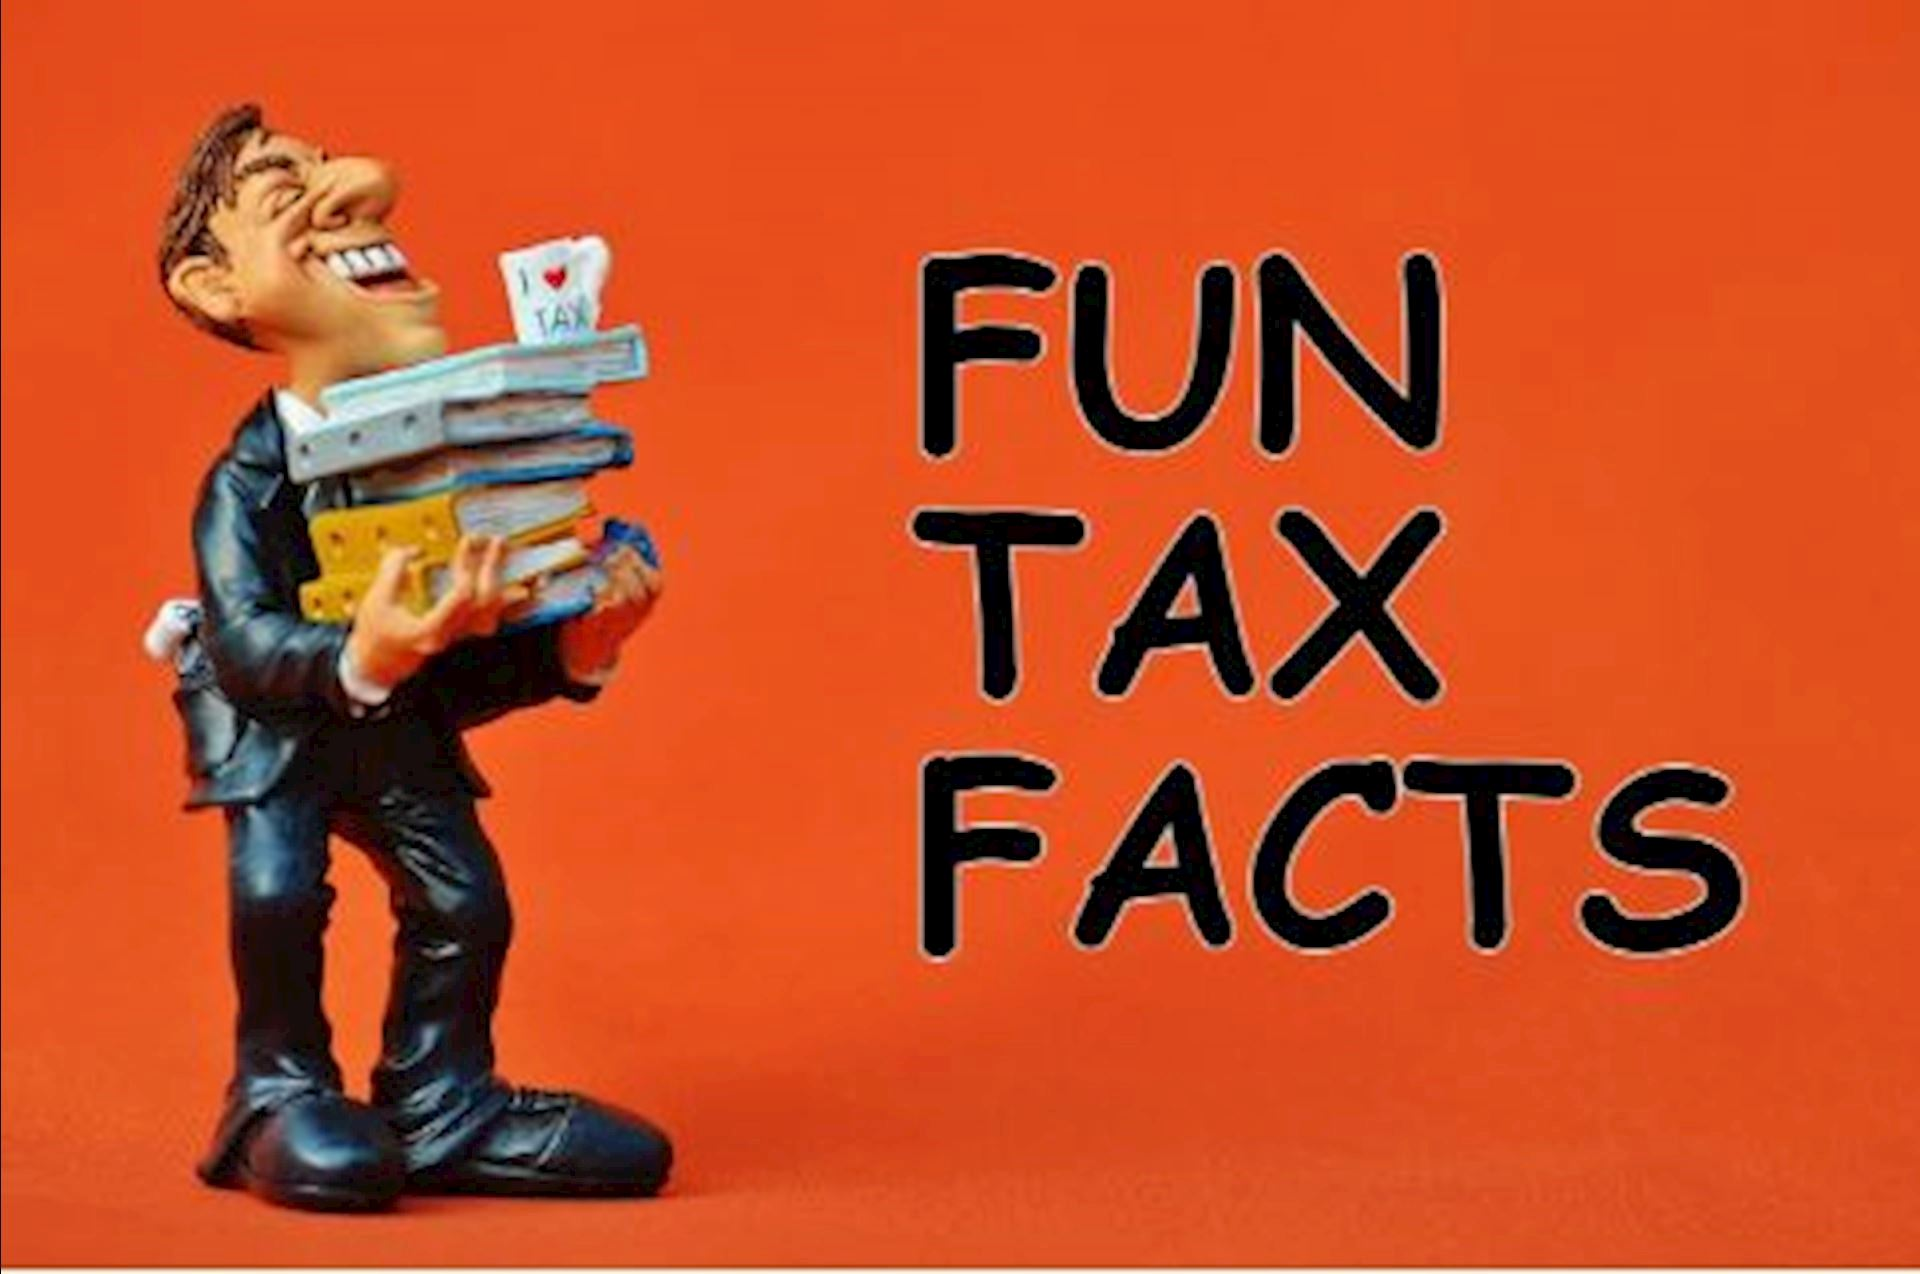 Relieve Some Tax Stress with These Fun Tax Facts